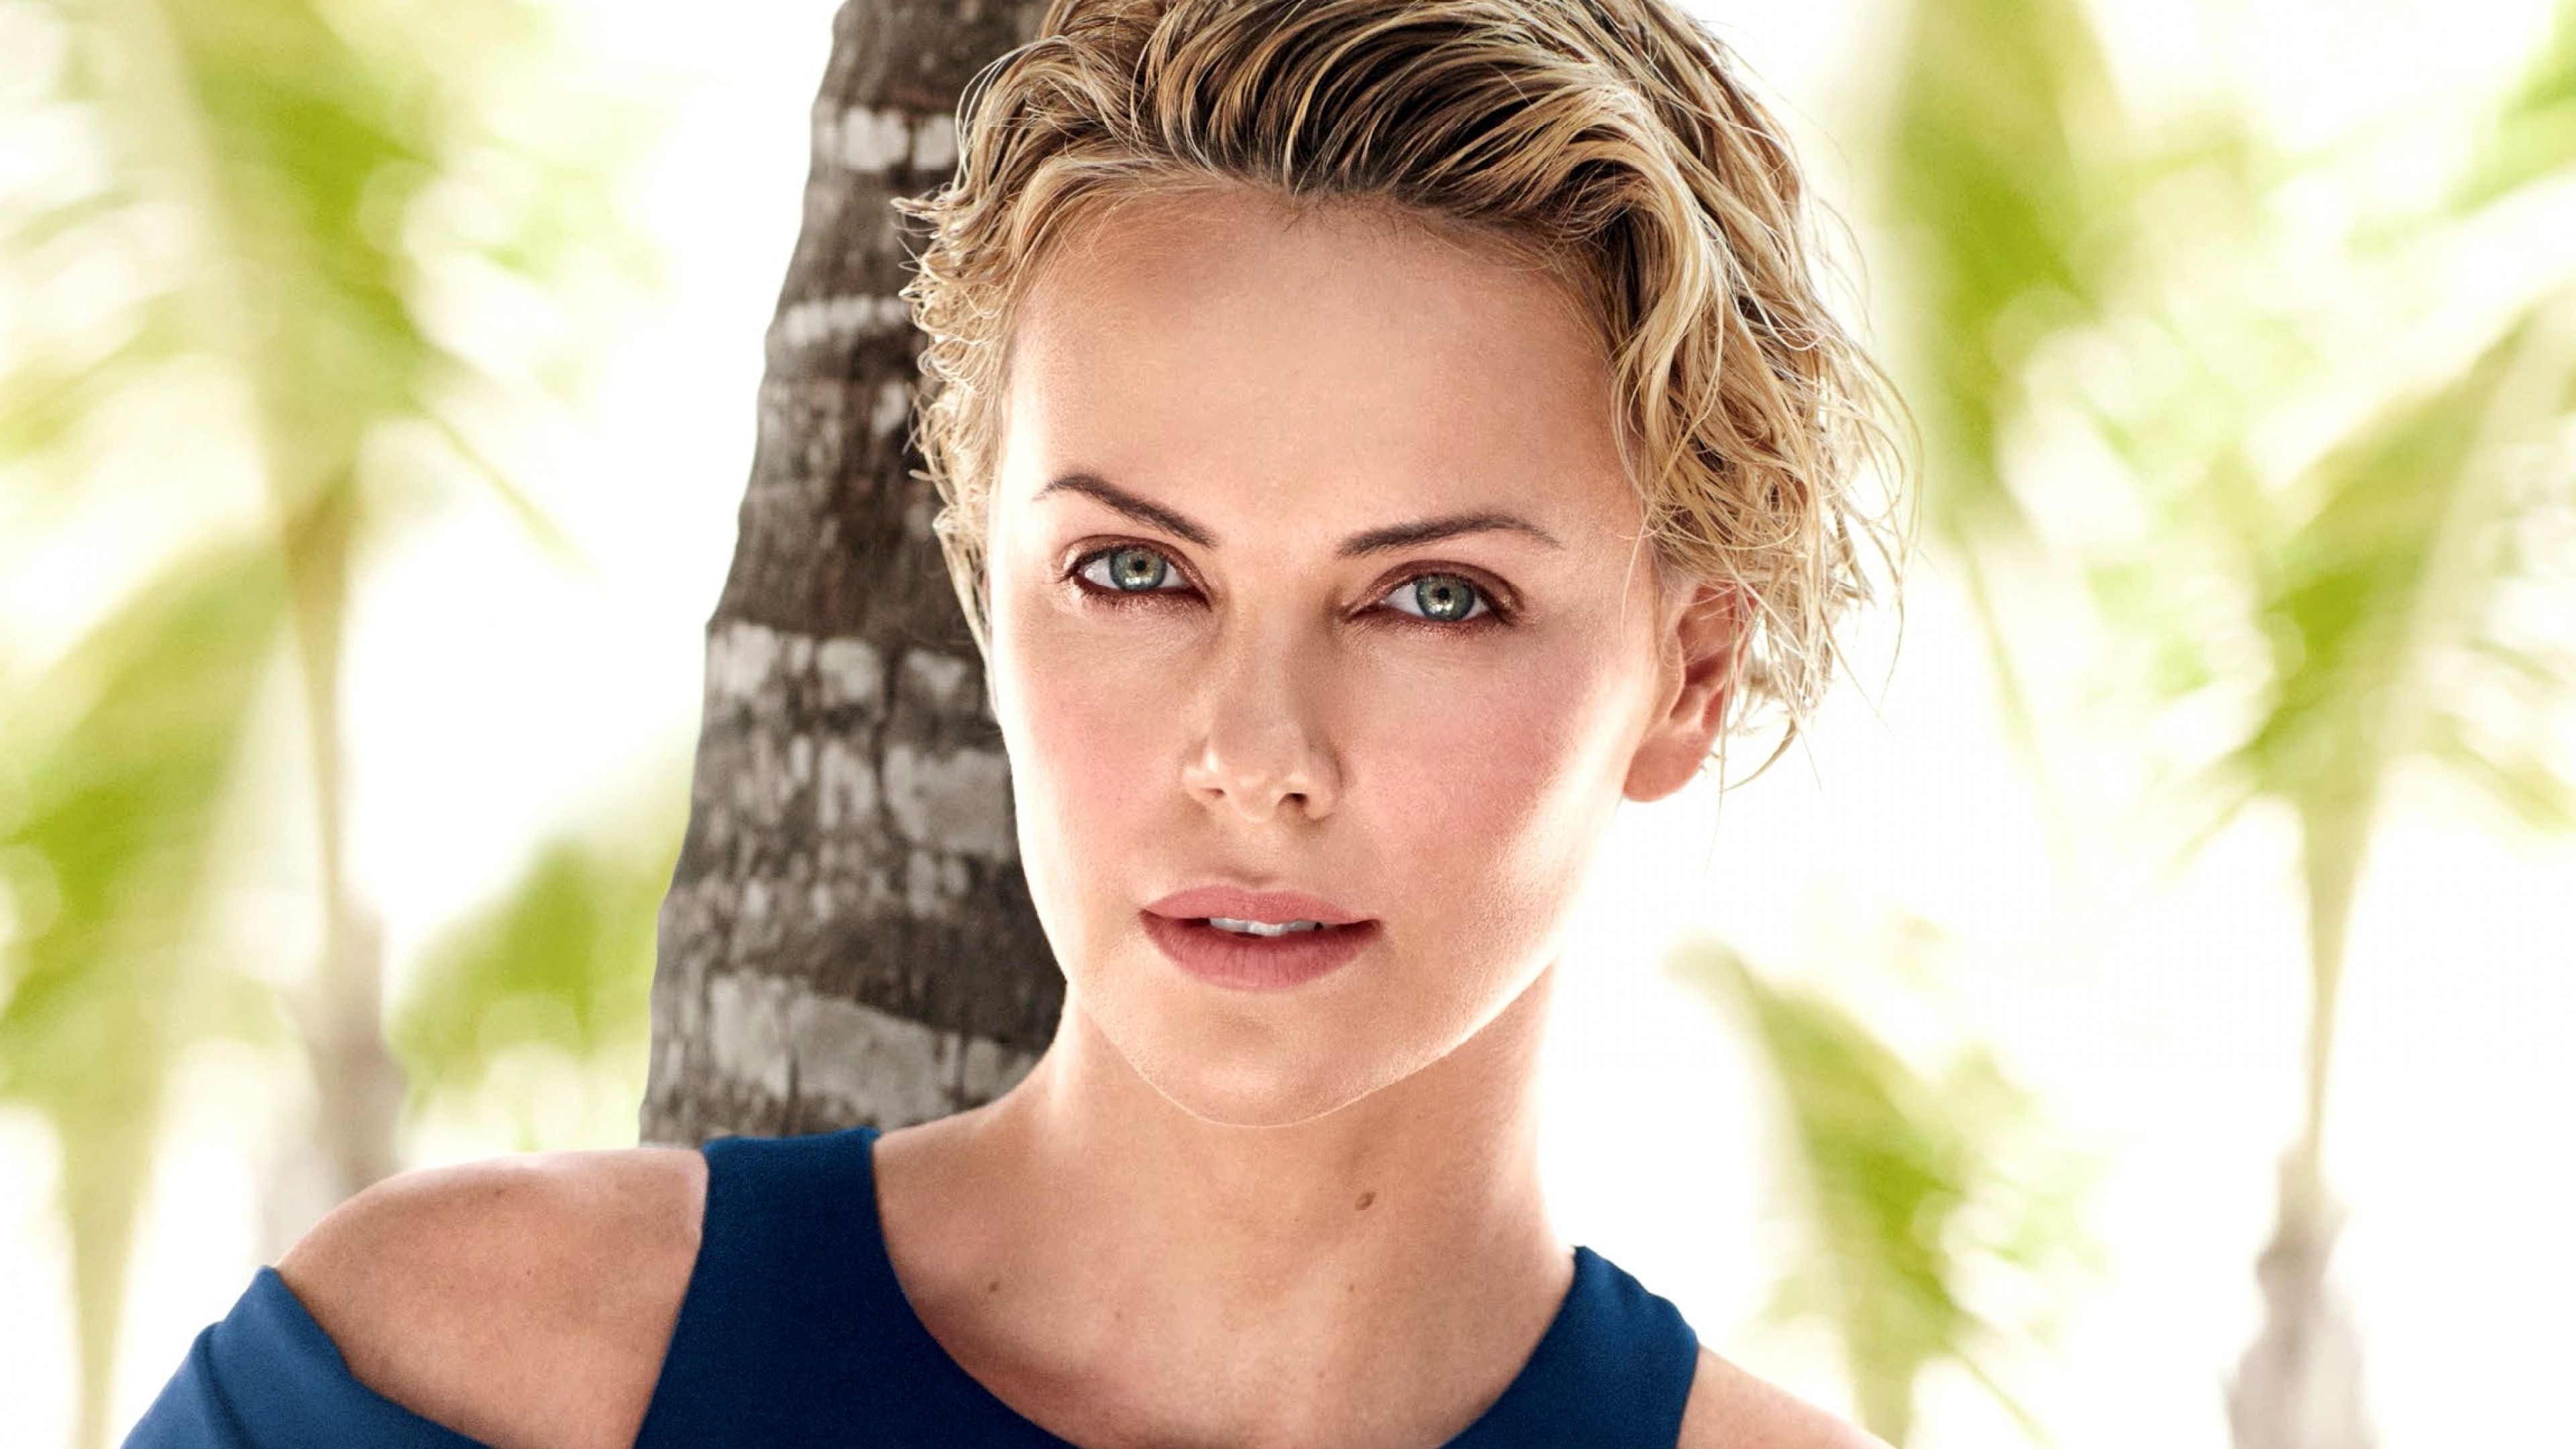 2019 charlize theron 1536862708 - 2019 Charlize Theron - hd-wallpapers, girls wallpapers, charlize theron wallpapers, celebrities wallpapers, 4k-wallpapers